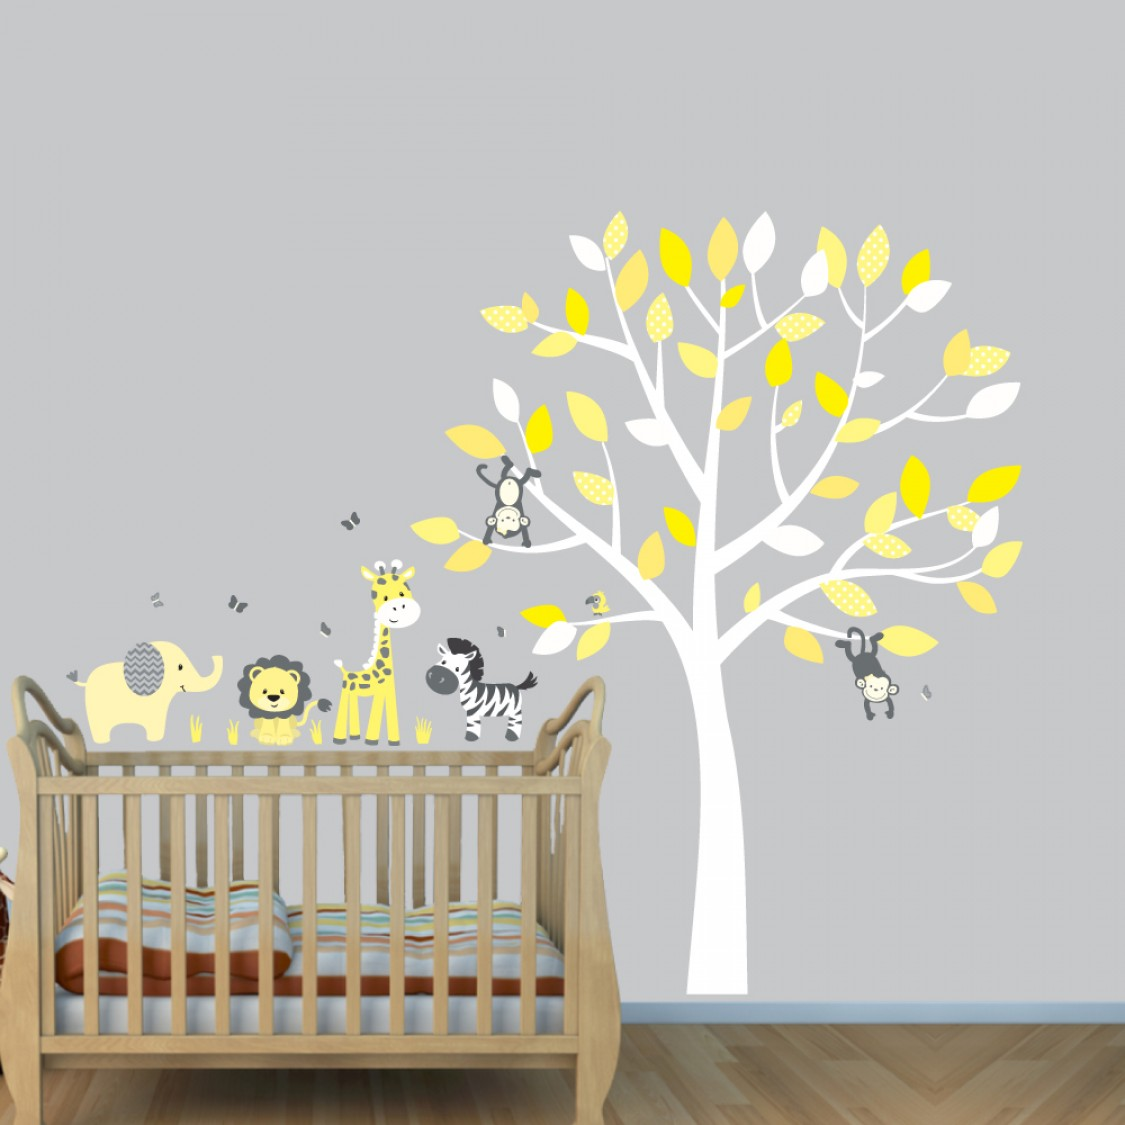 Sticker Decor Grey Jungle Wall Stickers With Elephant Decals For Yellow